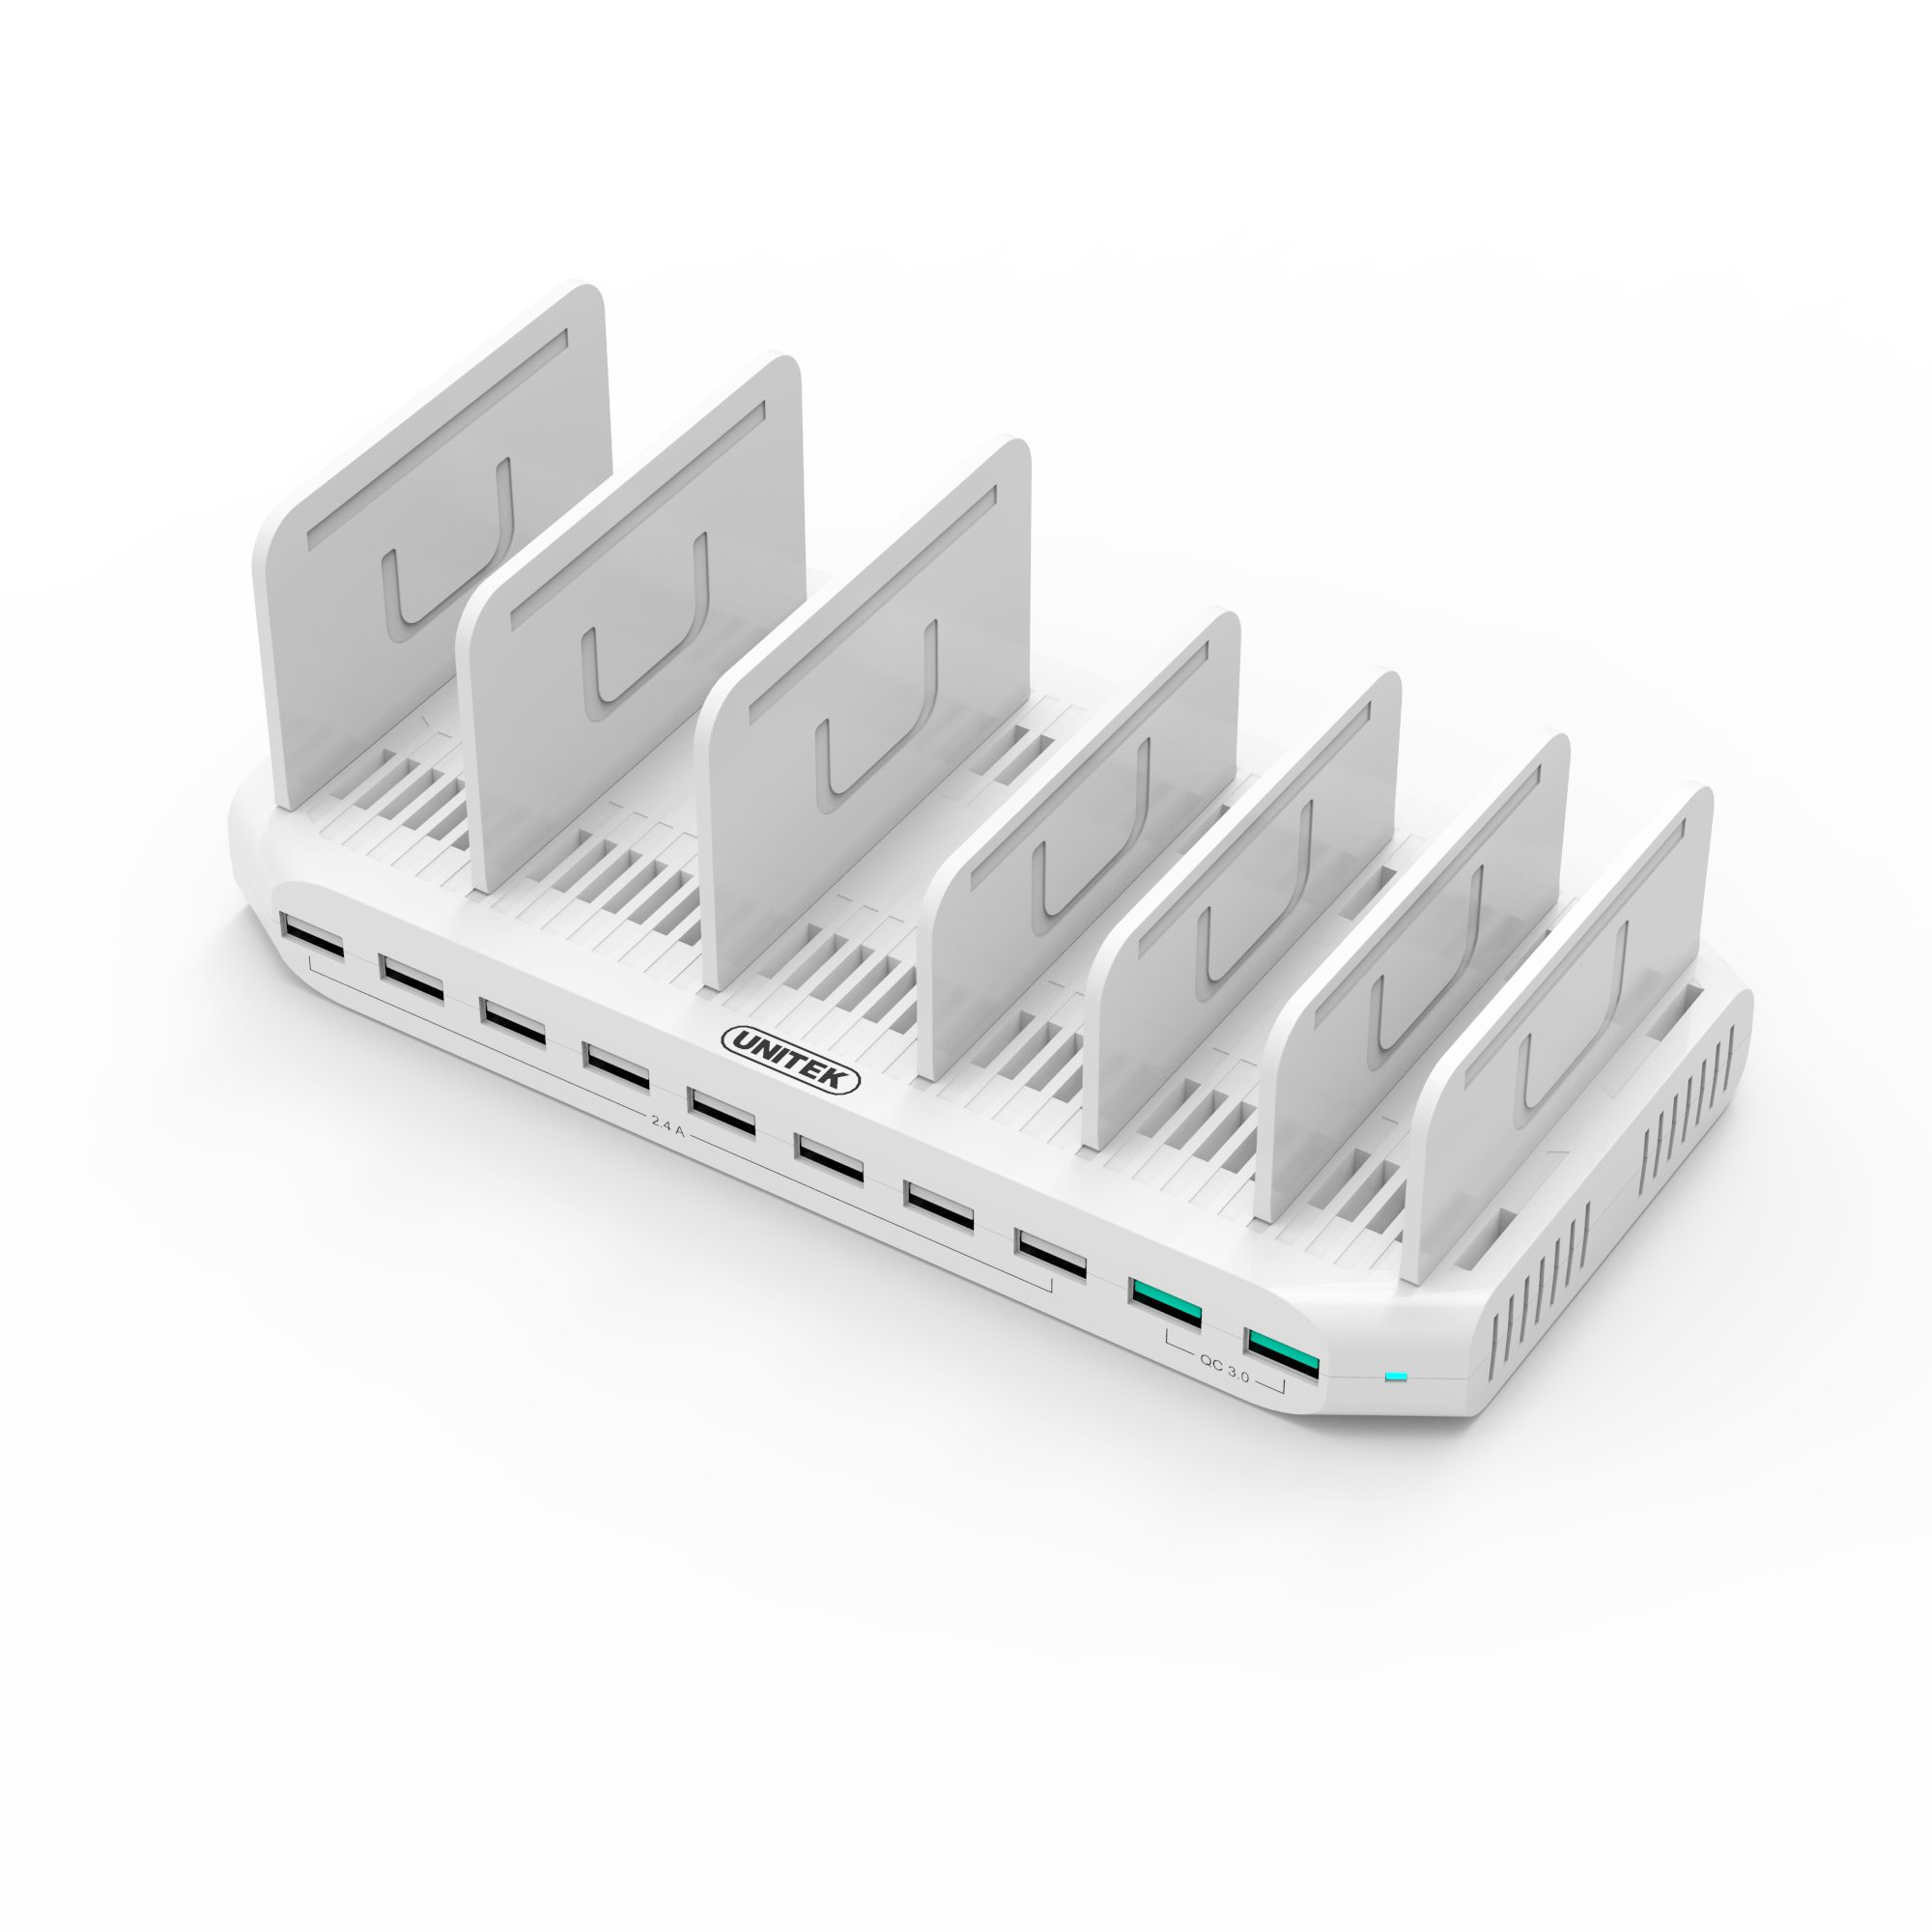 iPad Charging Station, Unitek 96W 10-Port USB Charging Dock Hub with Quick Charge 3.0, Charging Stand Compatible Multiple Device, Charging 8 iPads Simultaneously - White [Upgraded Divider]